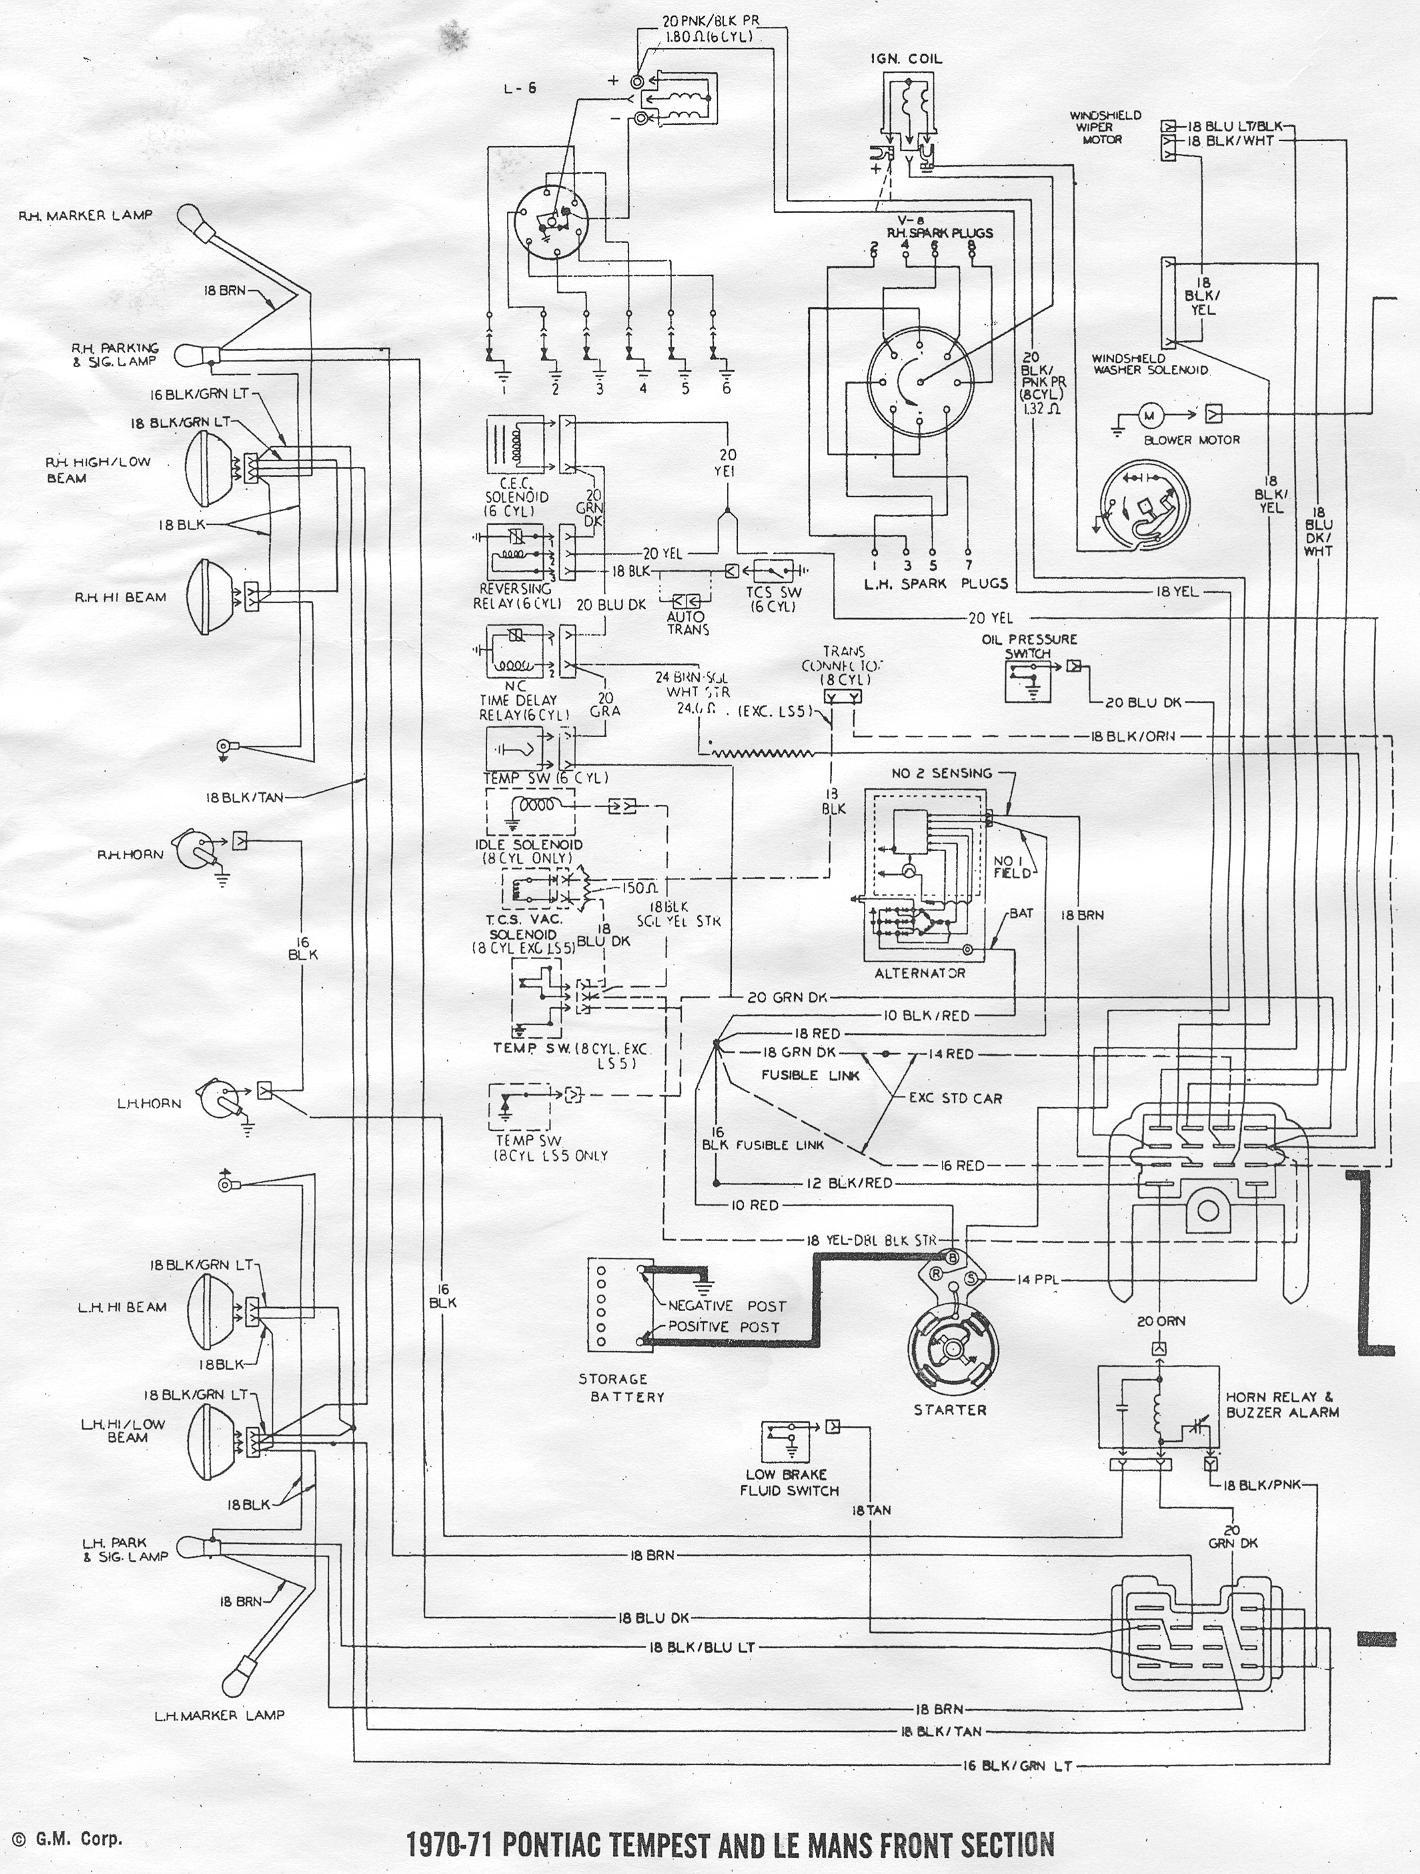 camaro wiring diagram image wiring diagram 1968 camaro wiring diagram wiring diagram and hernes on 1968 camaro wiring diagram